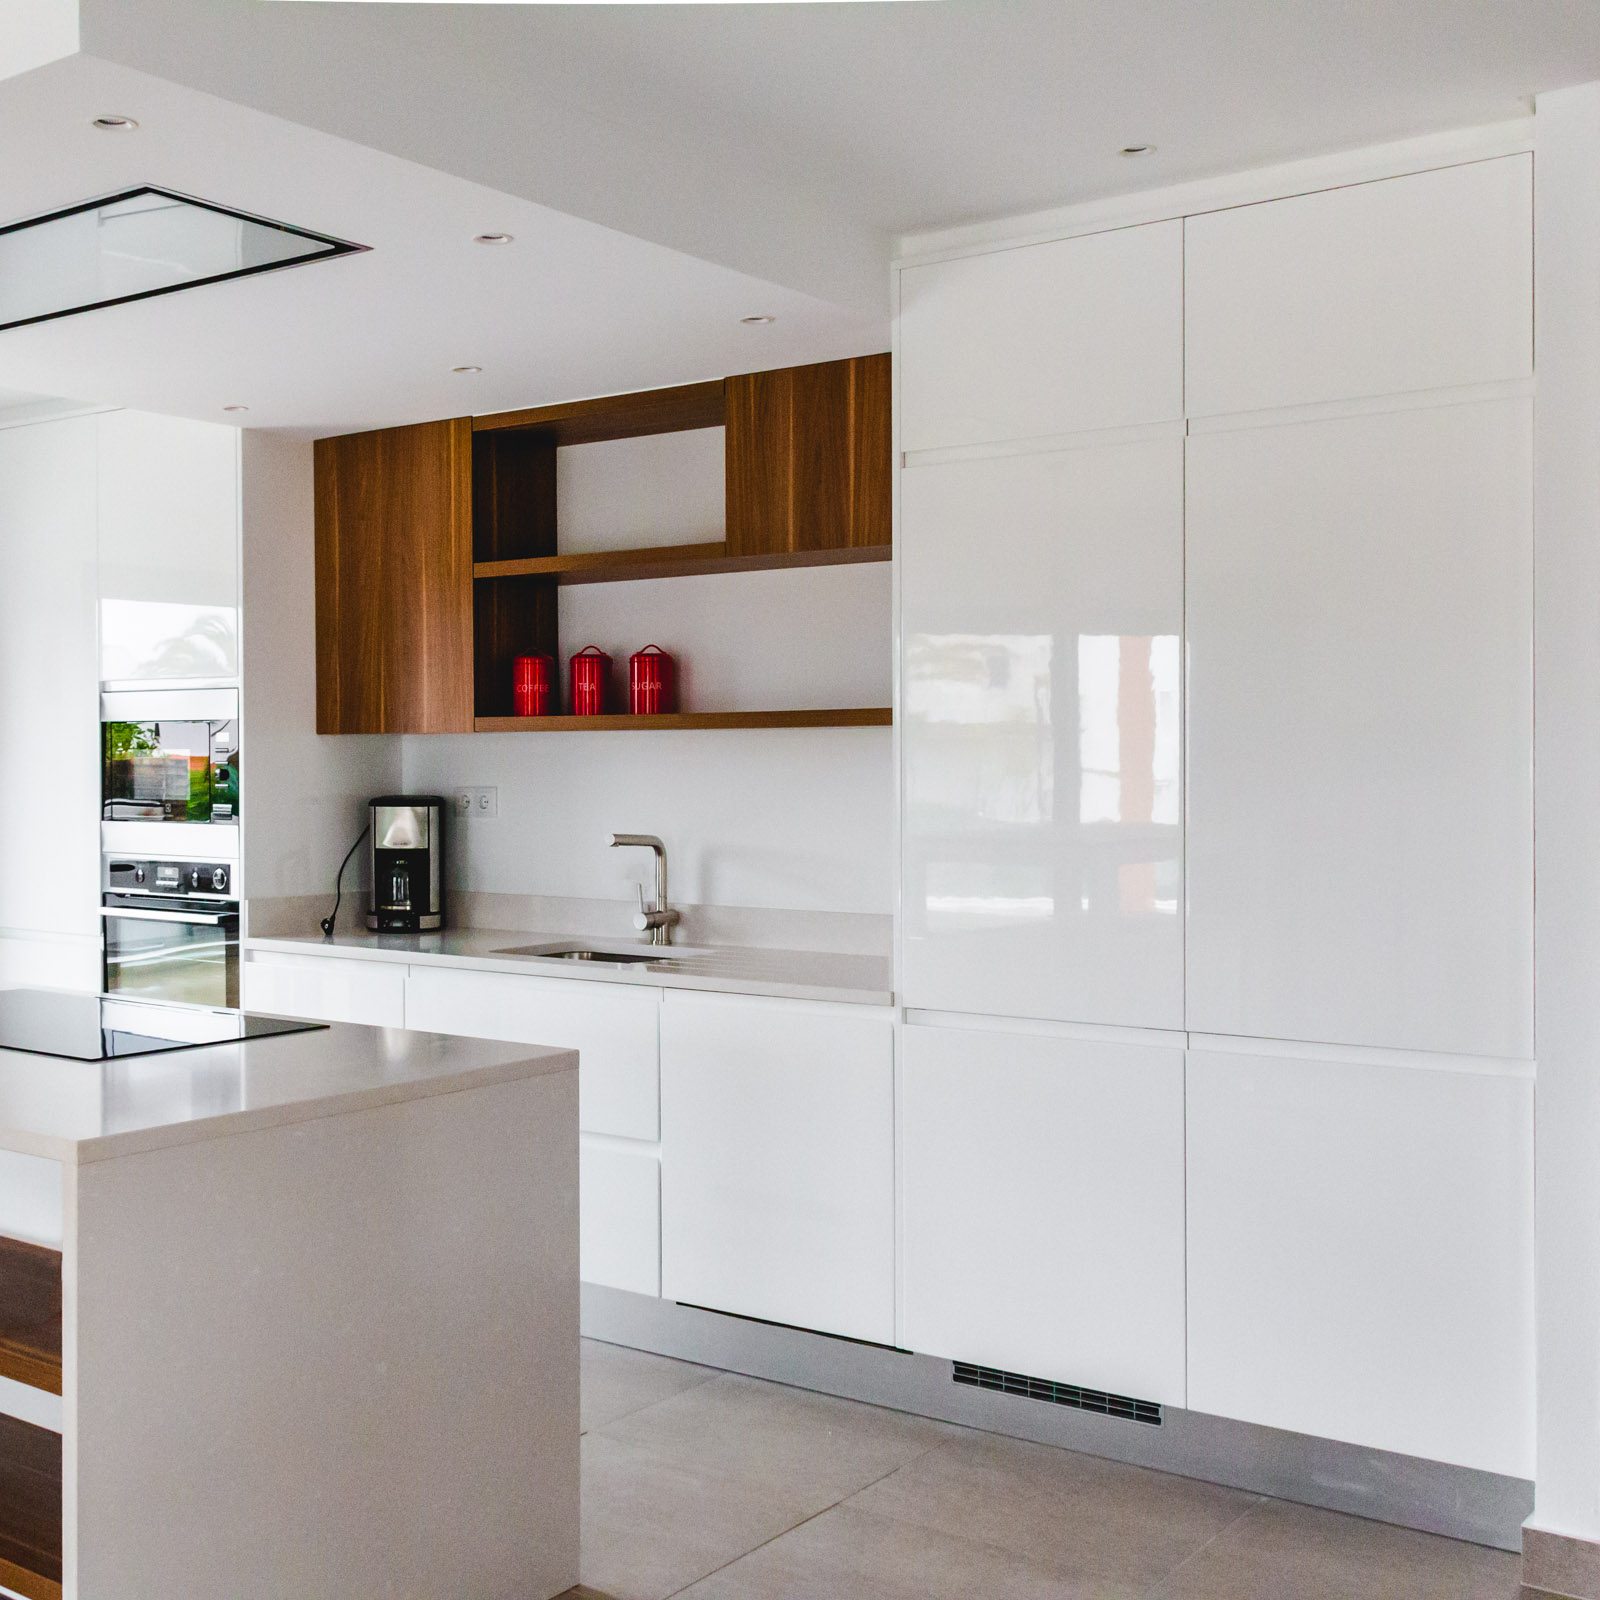 Handleless Modern Kitchen with white lacquered and melamine fronts